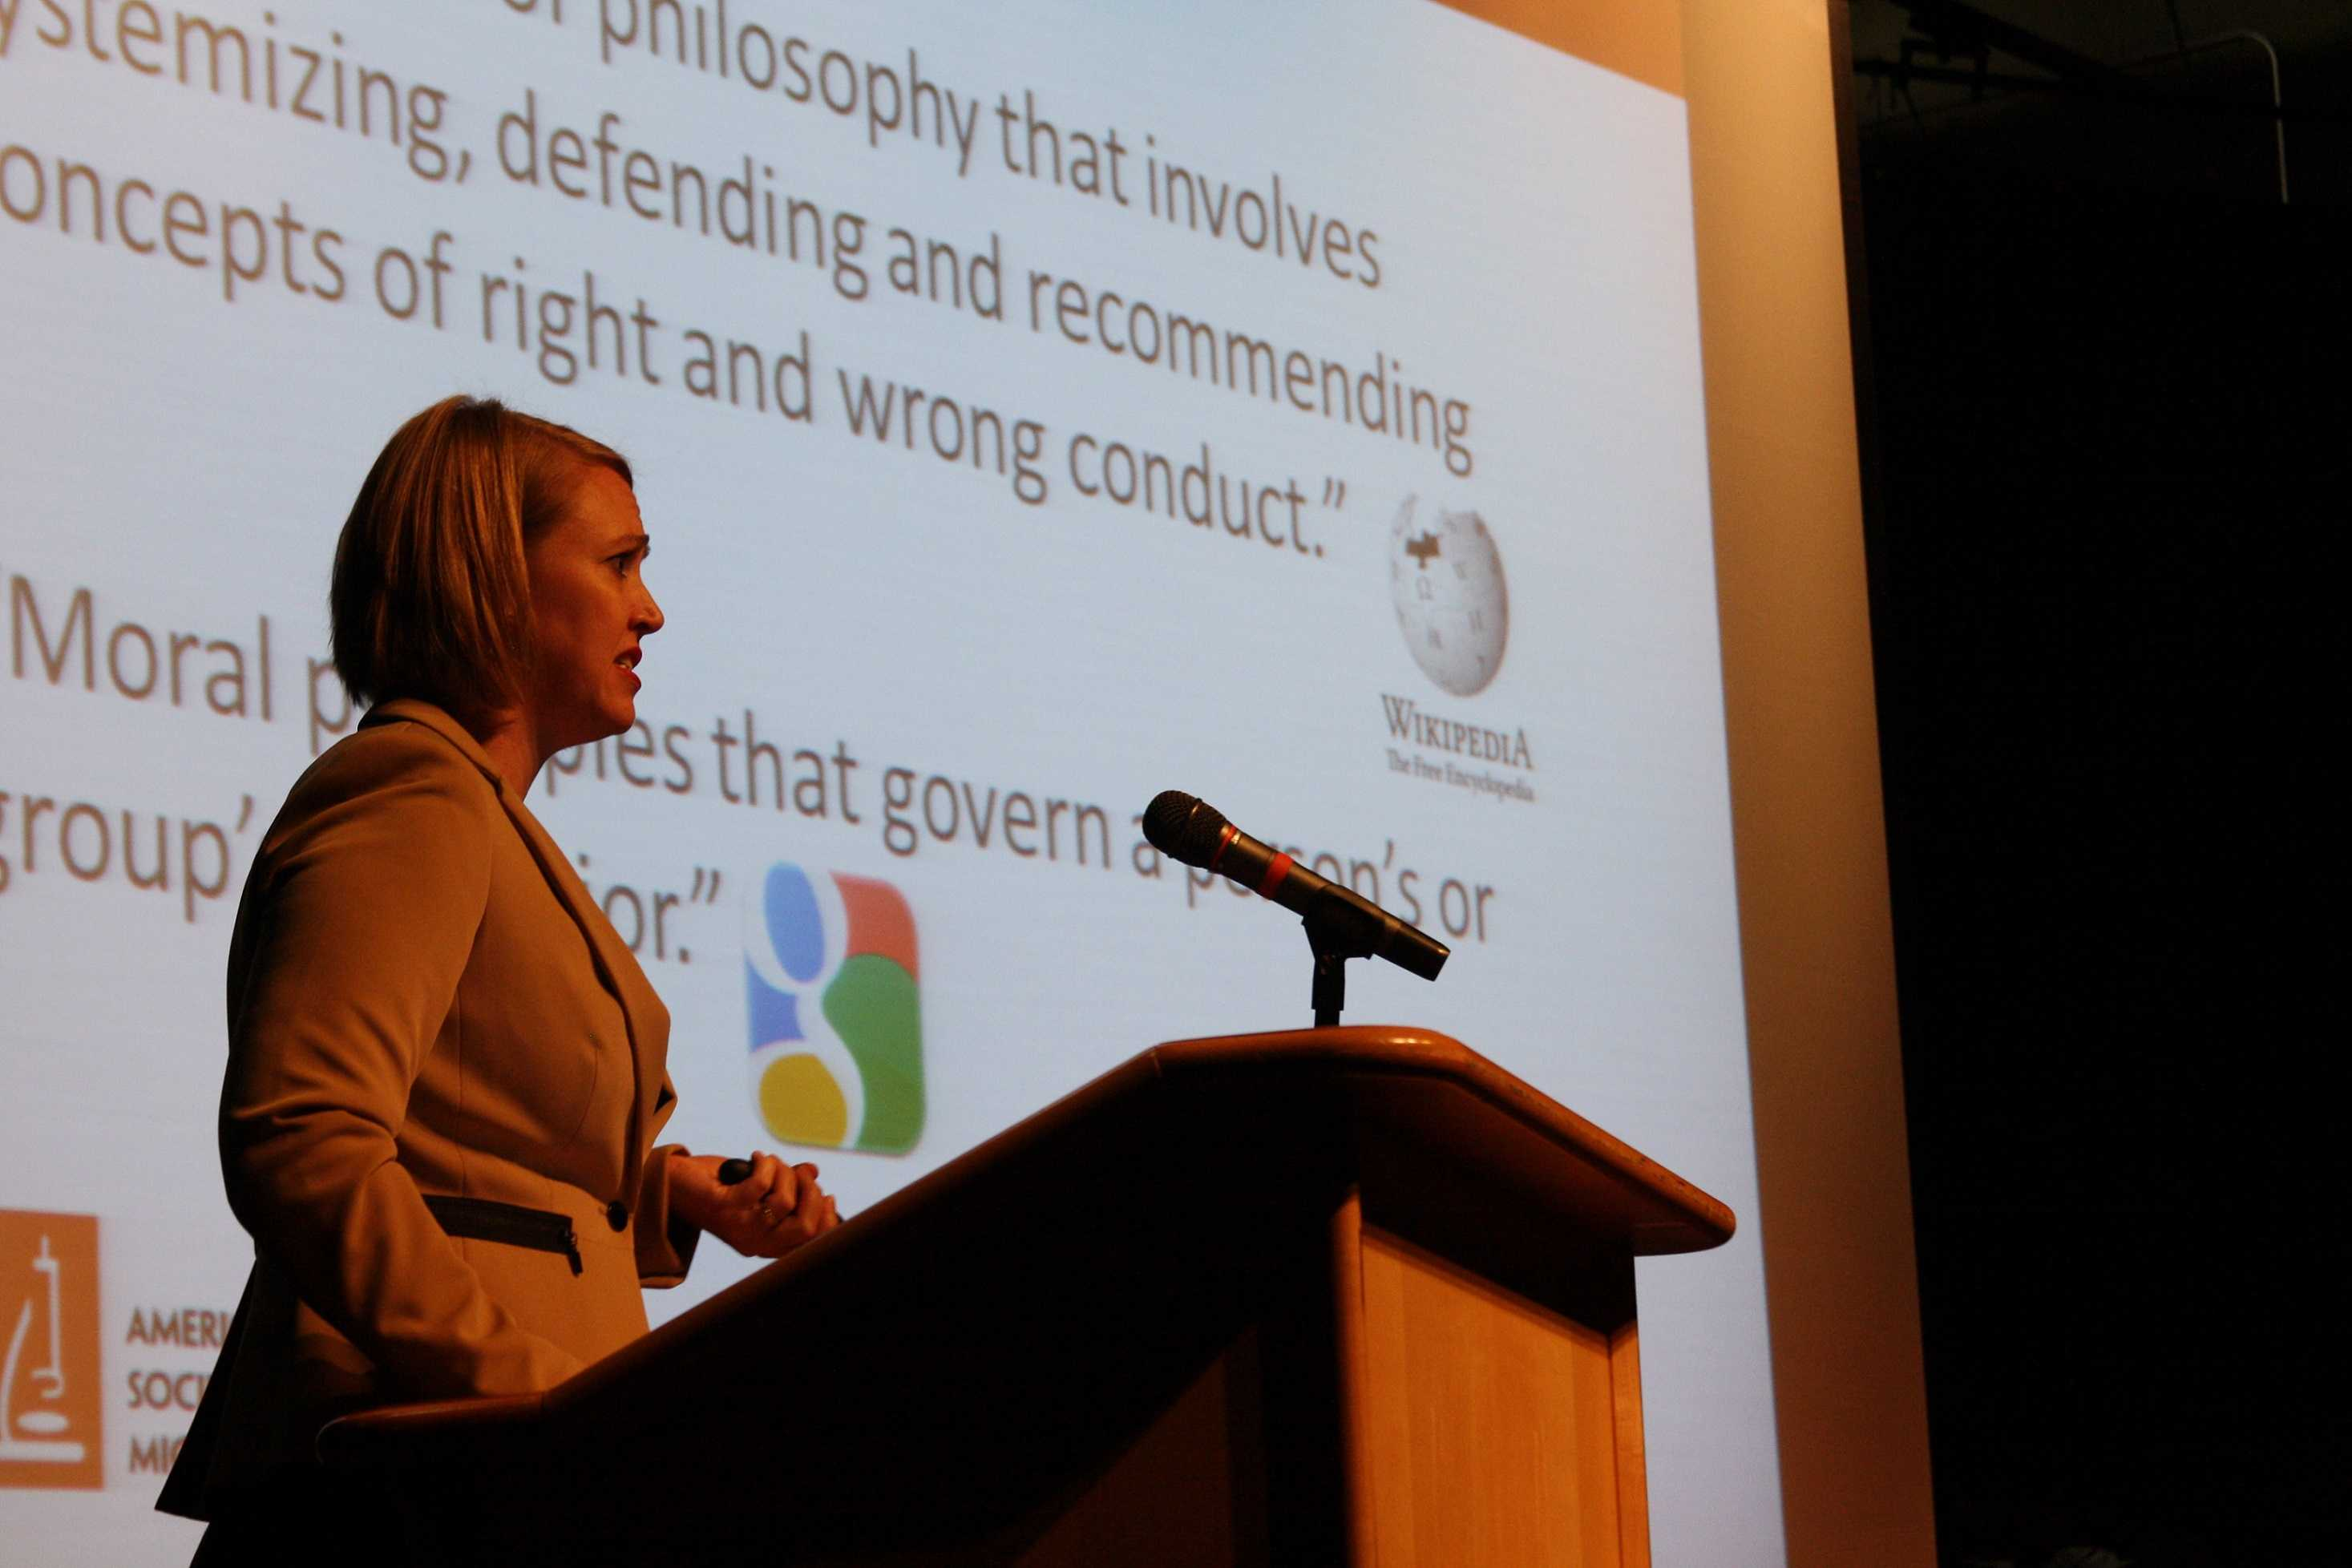 Keynote speaker Dr. Davies speaks in the auditorium about research that violated ethical and moral standards.